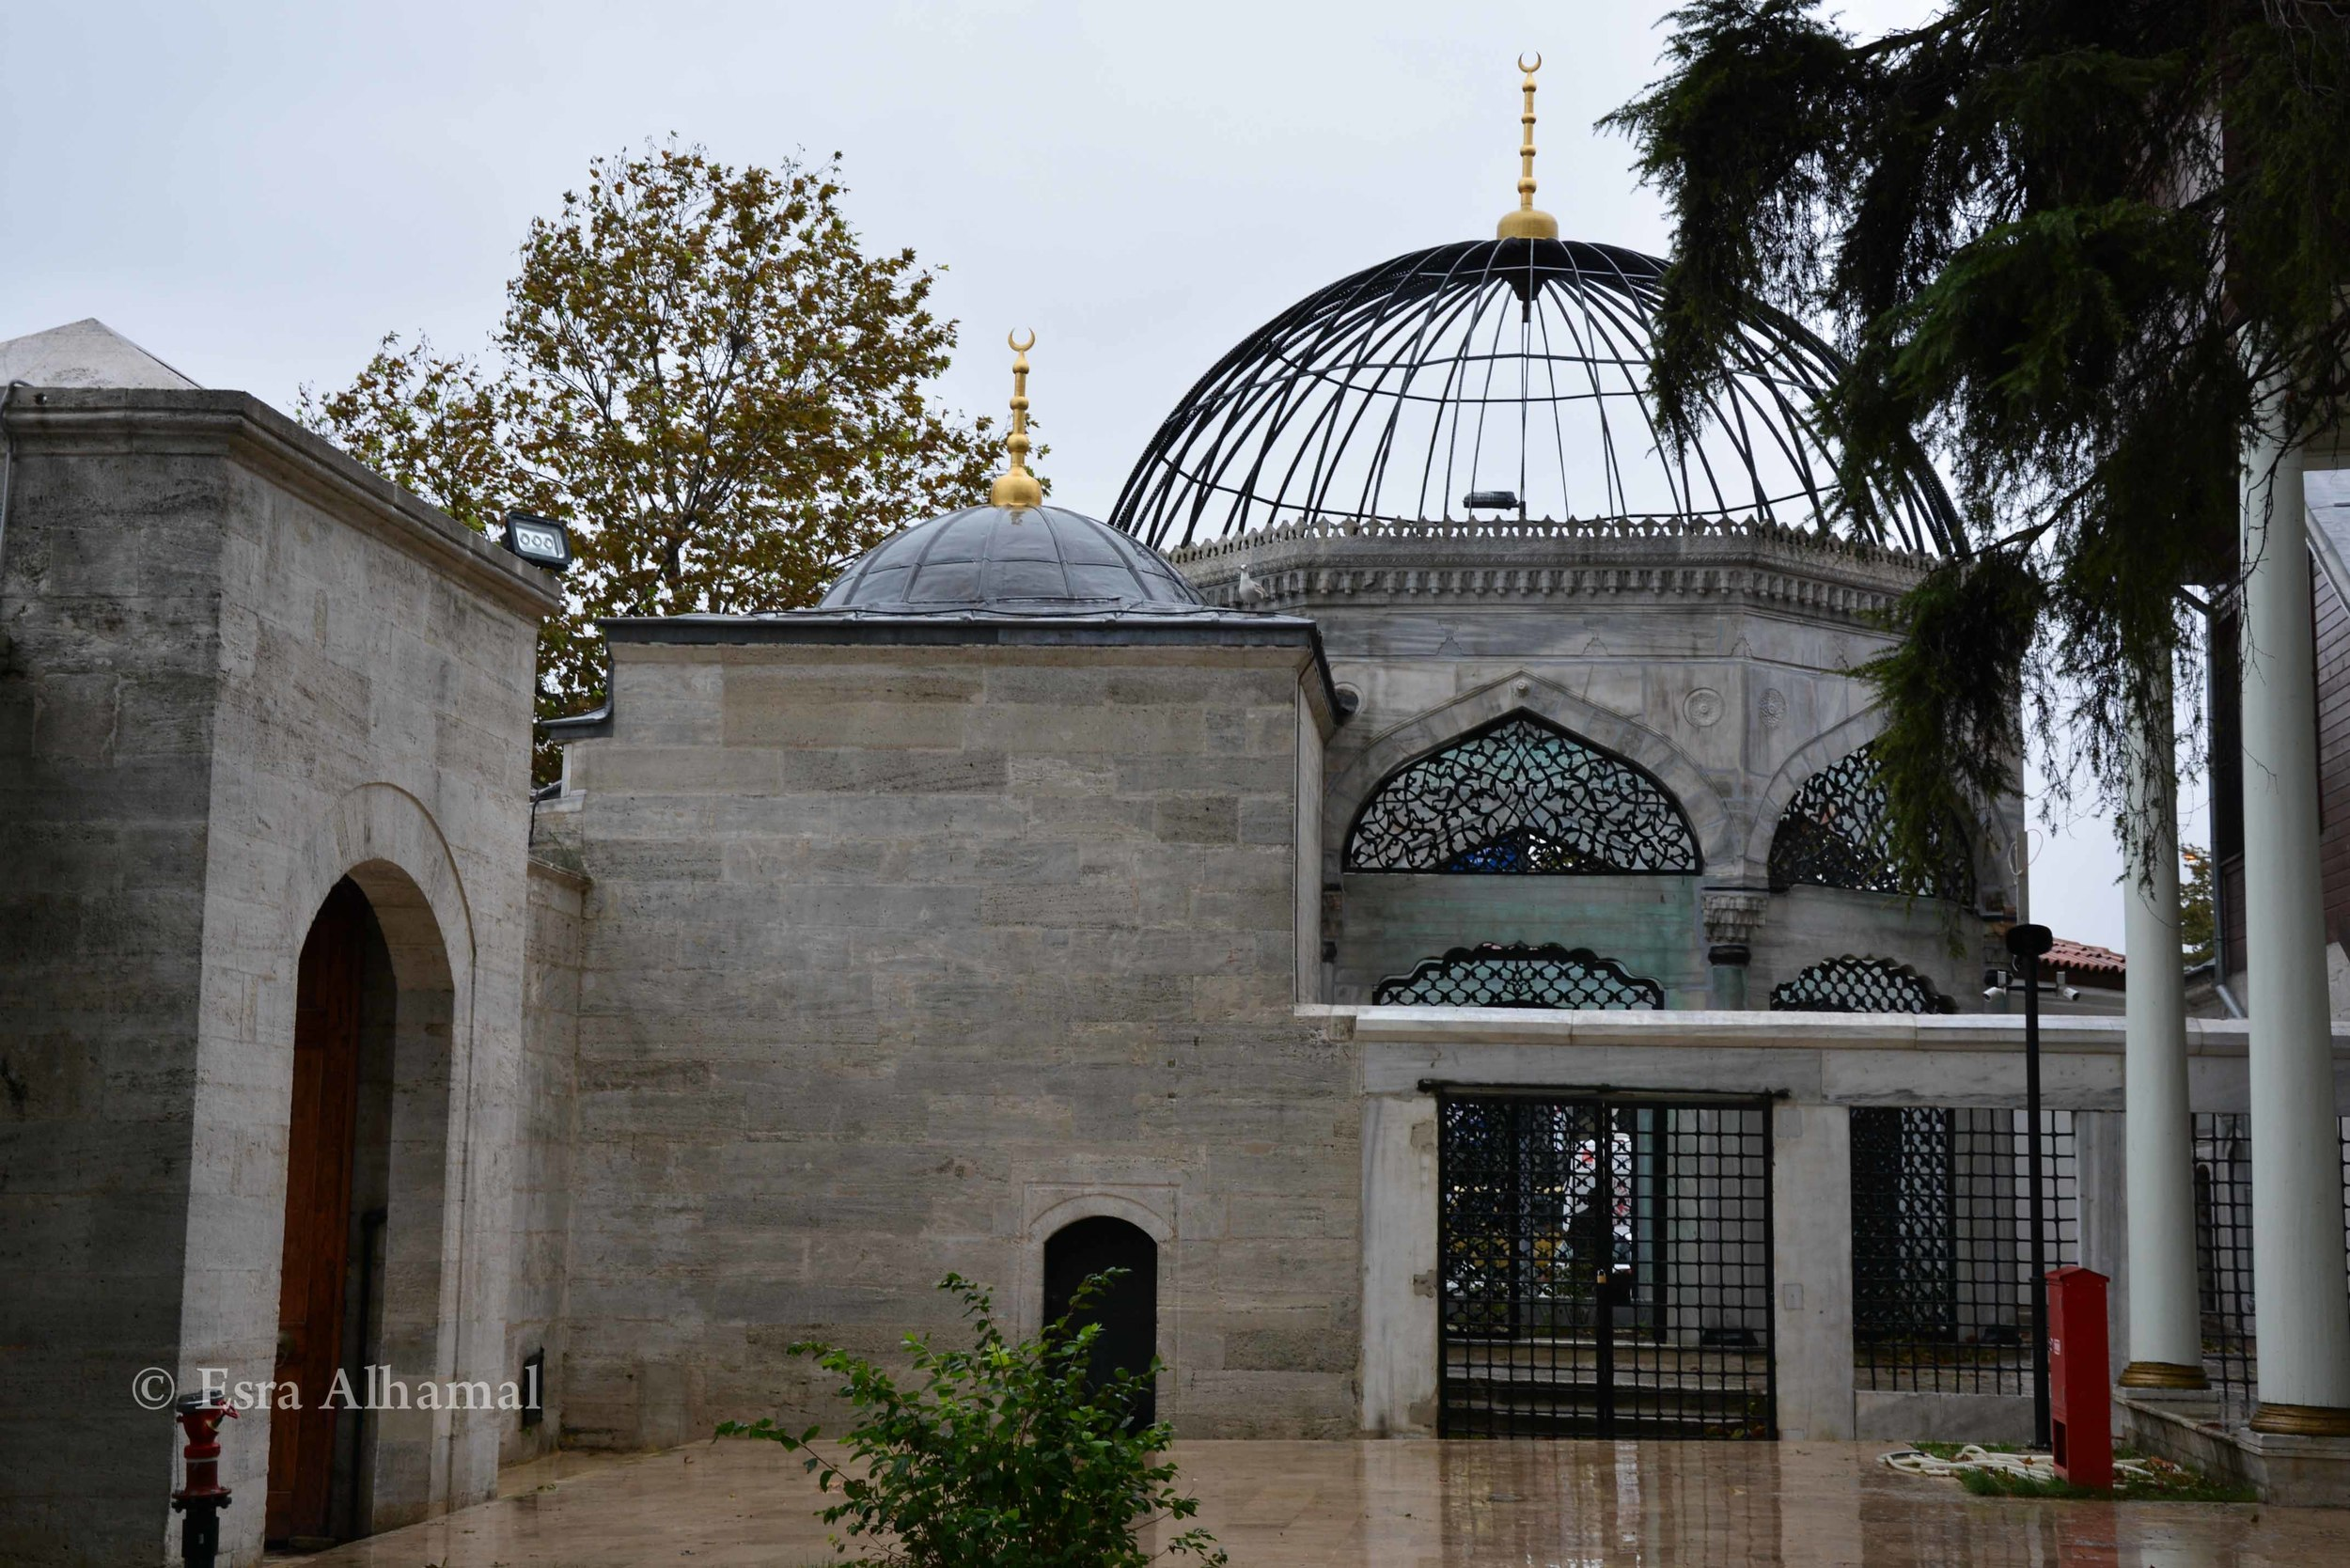 Yeni Valide Mosque on the outside